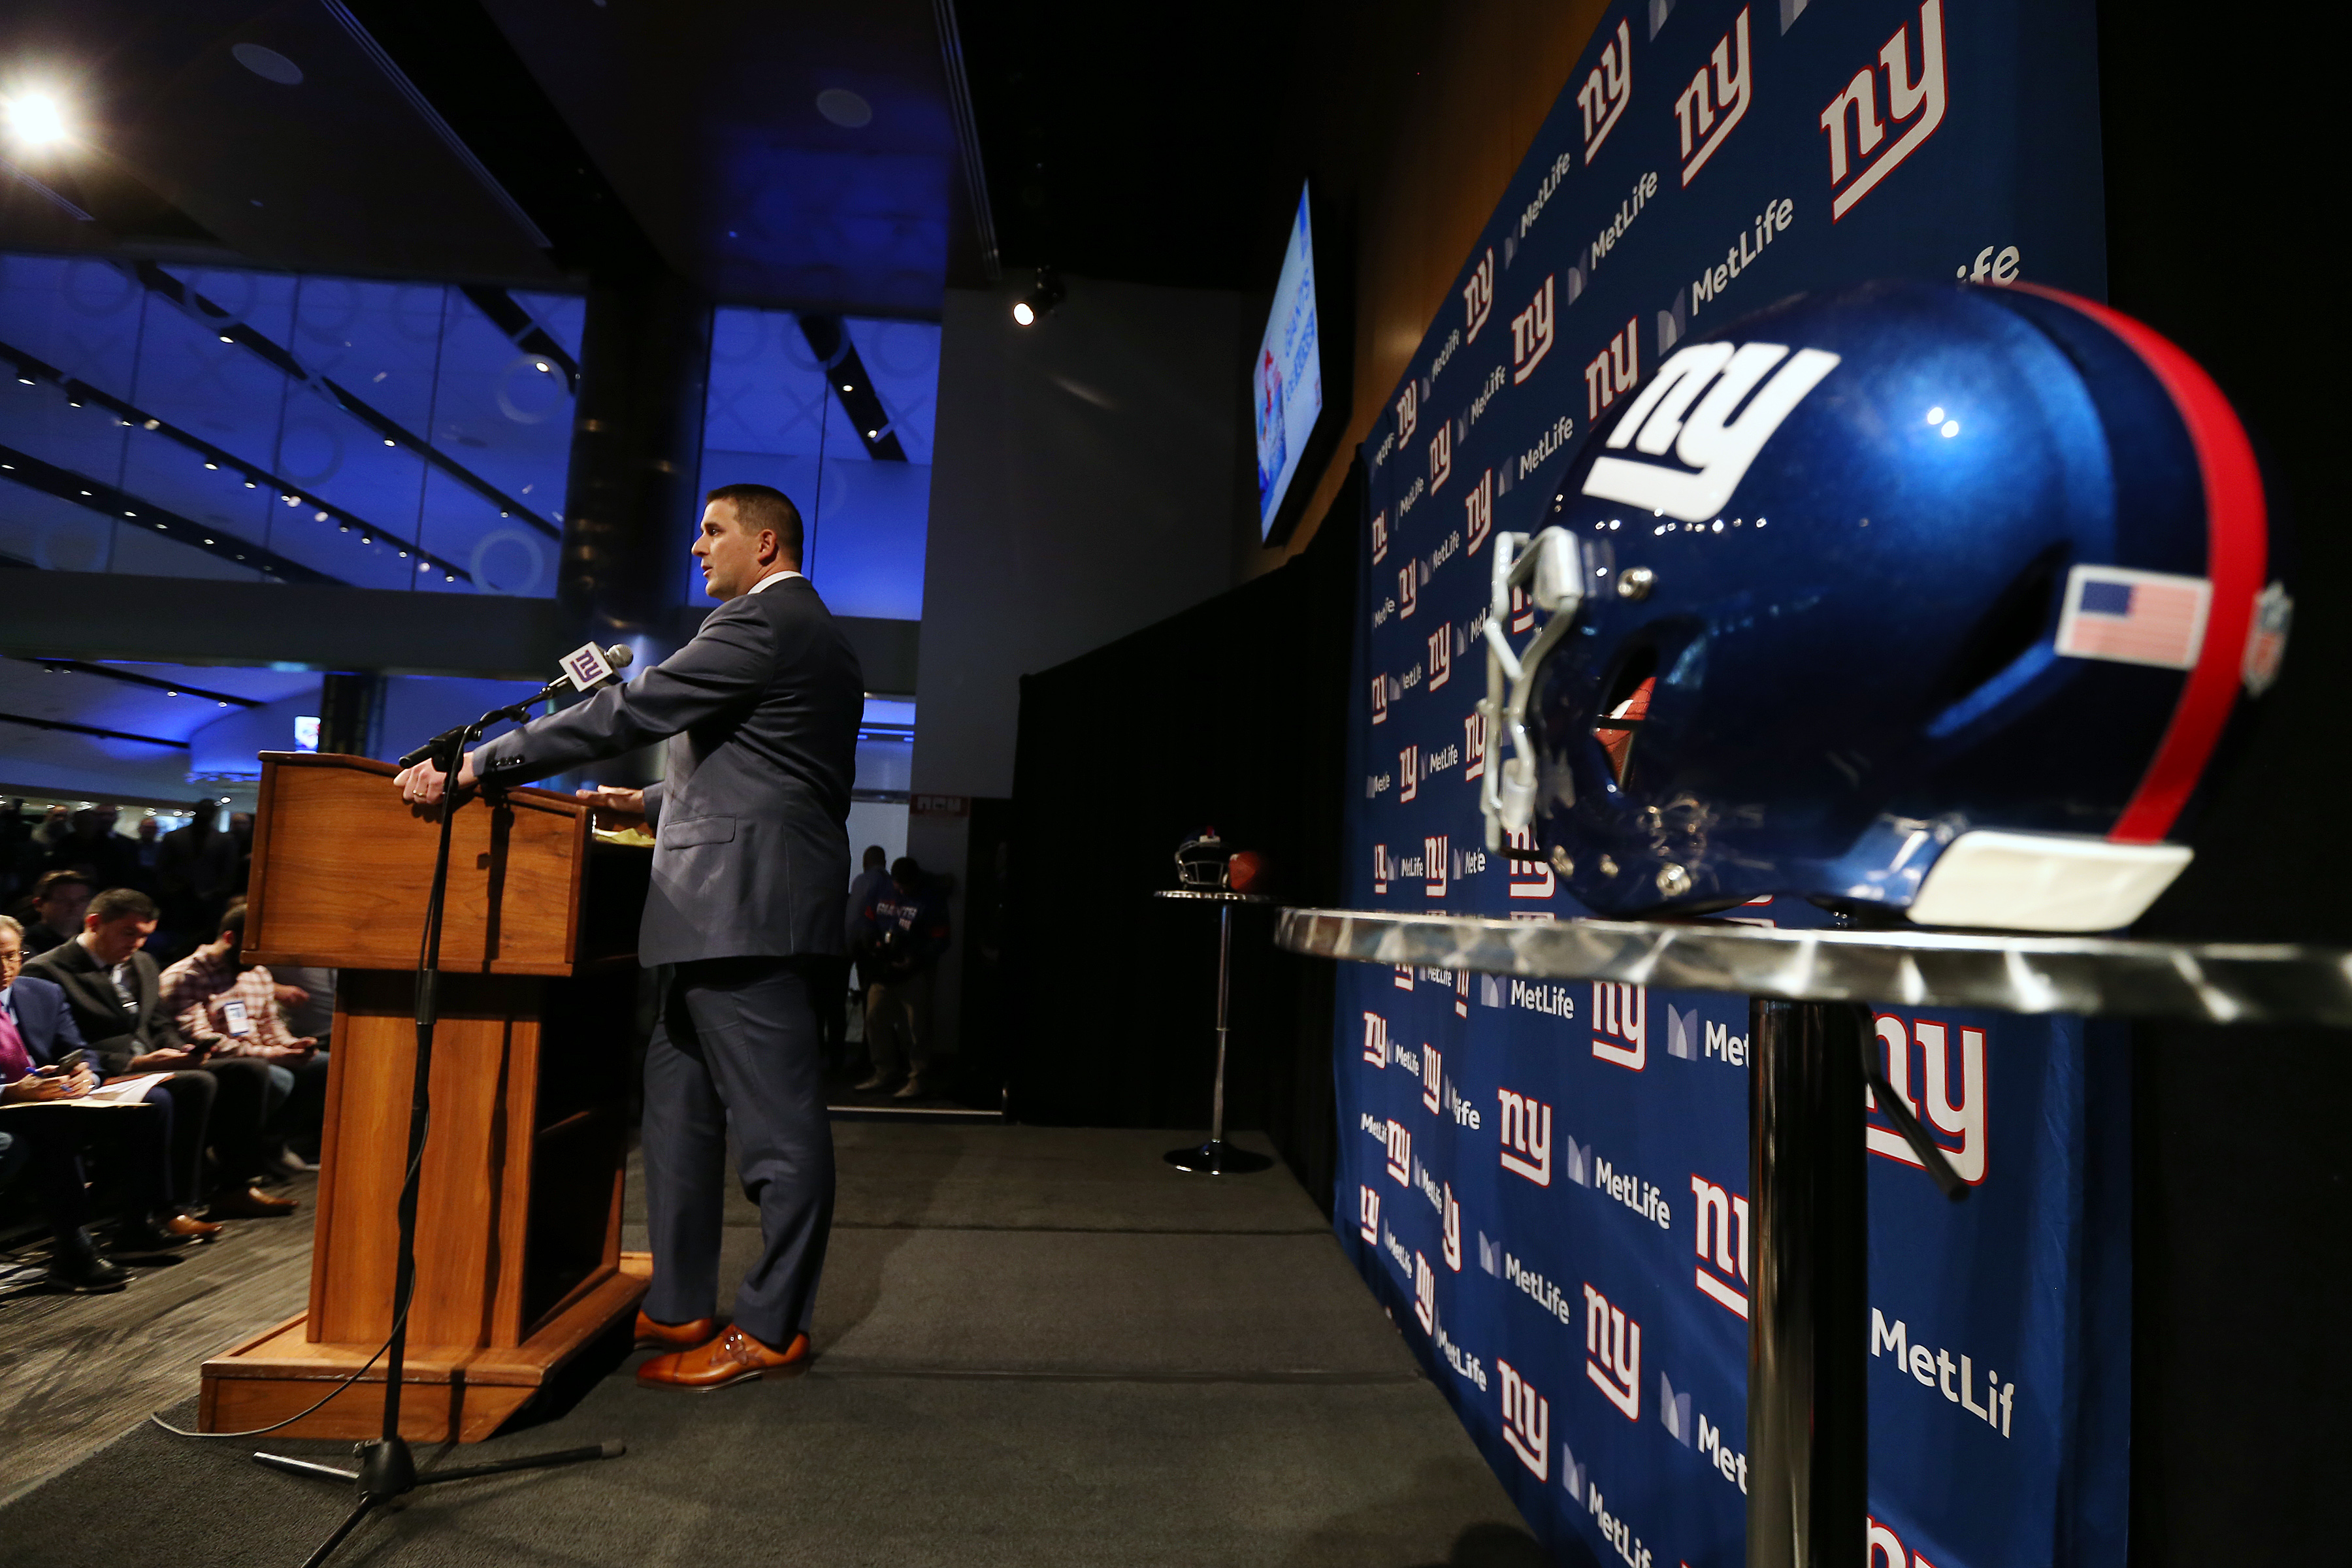 EAST RUTHERFORD, NJ - JANUARY 09: Joe Judge talks after being introduced introduced as the new head coach of the New York Giants during a news conference at MetLife Stadium on January 9, 2020 in East Rutherford, New Jersey. (Photo by Rich Schultz/Getty Images)